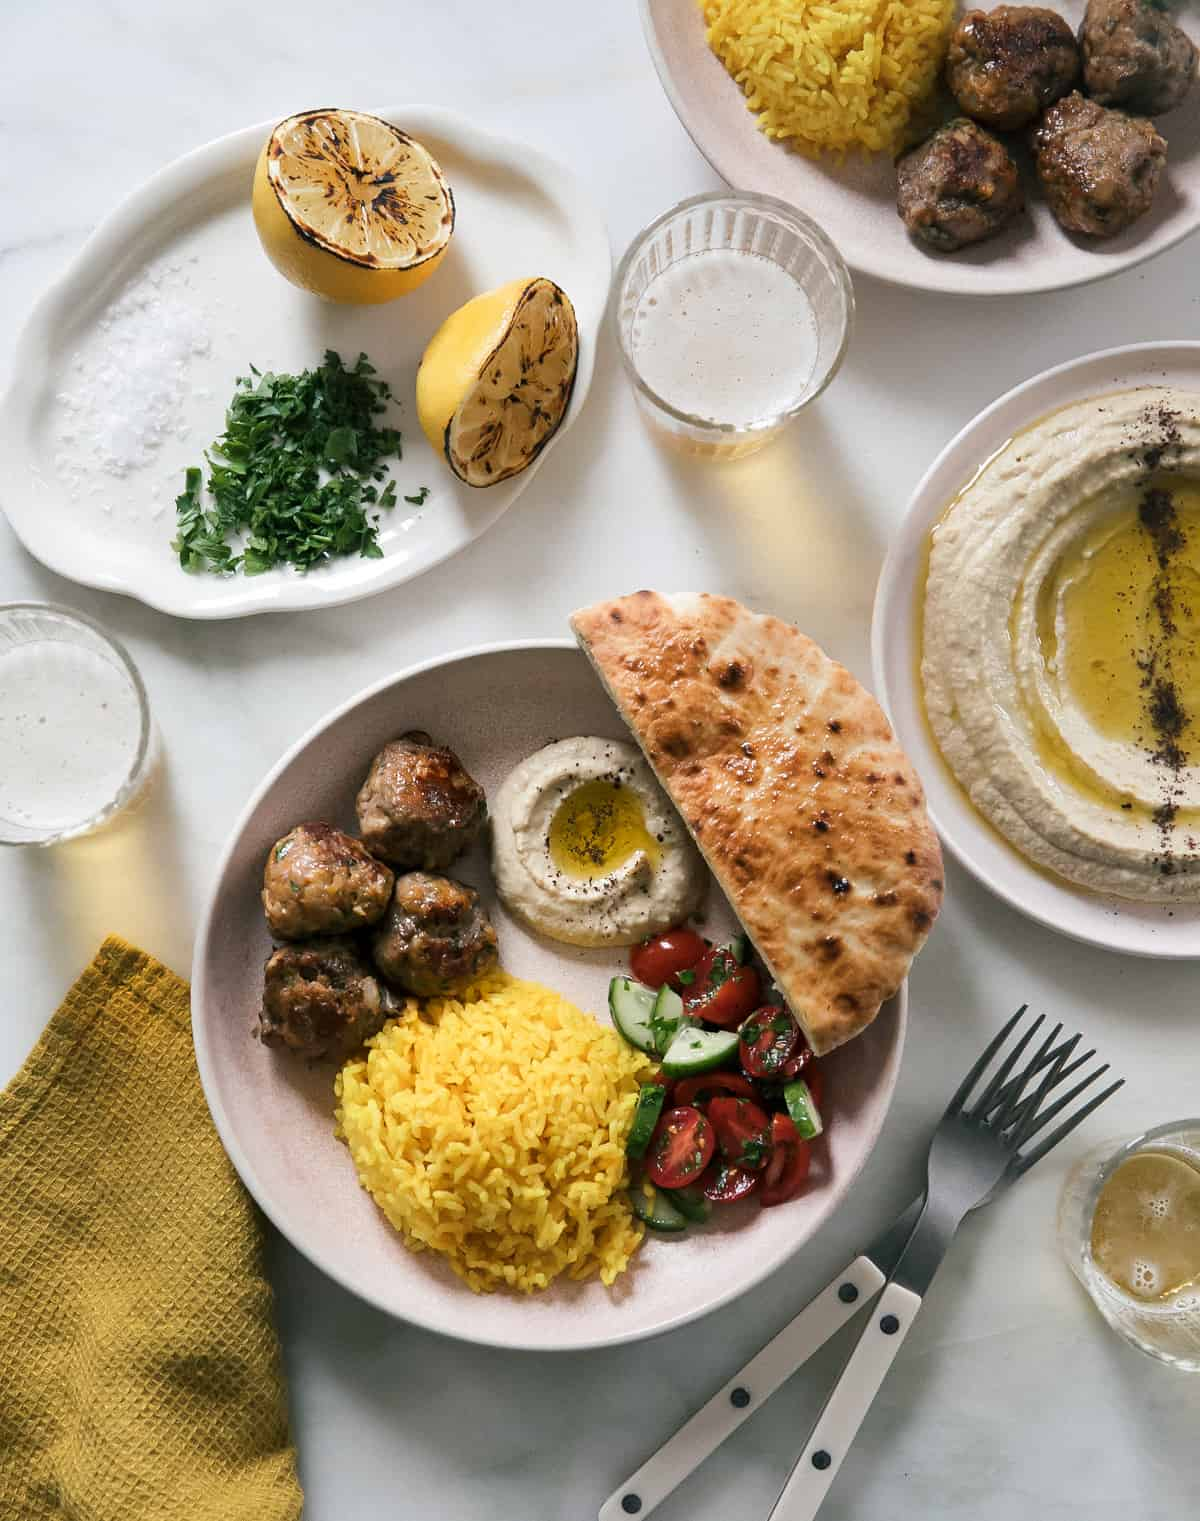 lamb kofta spread with hummus, pita, salad and yellow rice